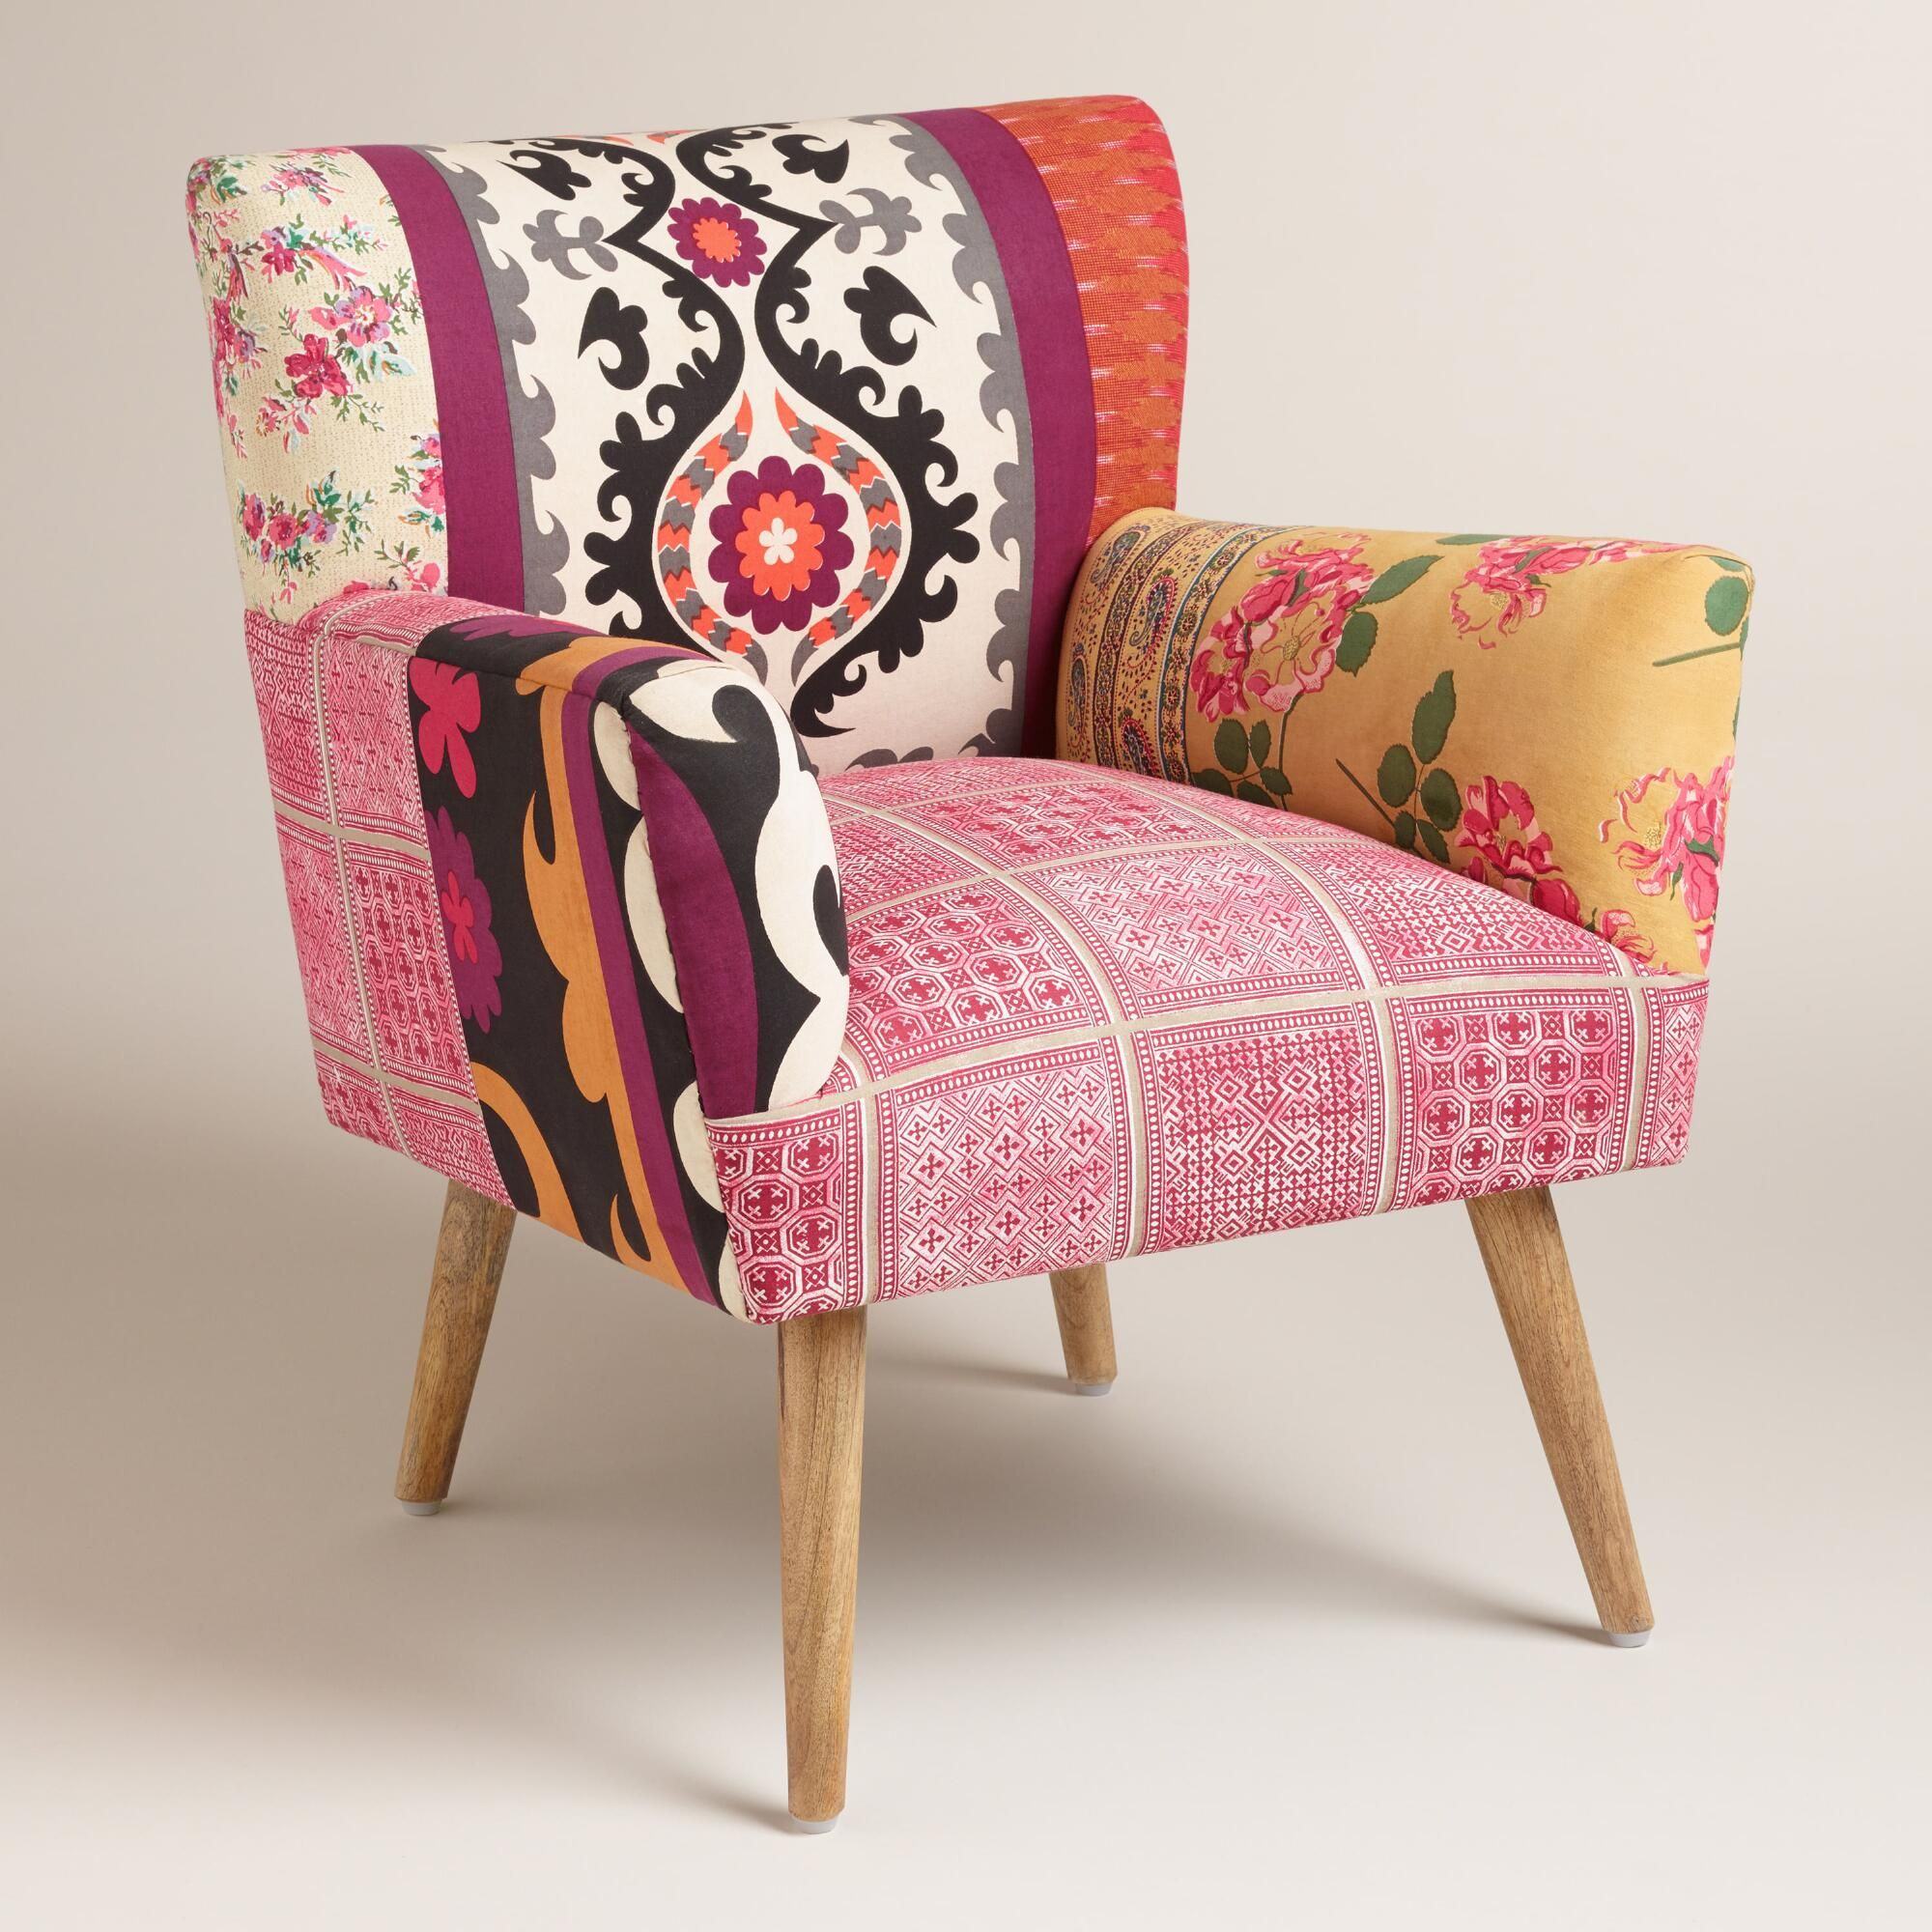 An eclectic mix of prints and colors gives our accent chair a bohemian feel its petite vintage inspired profile and slightly splayed mango wood legs add